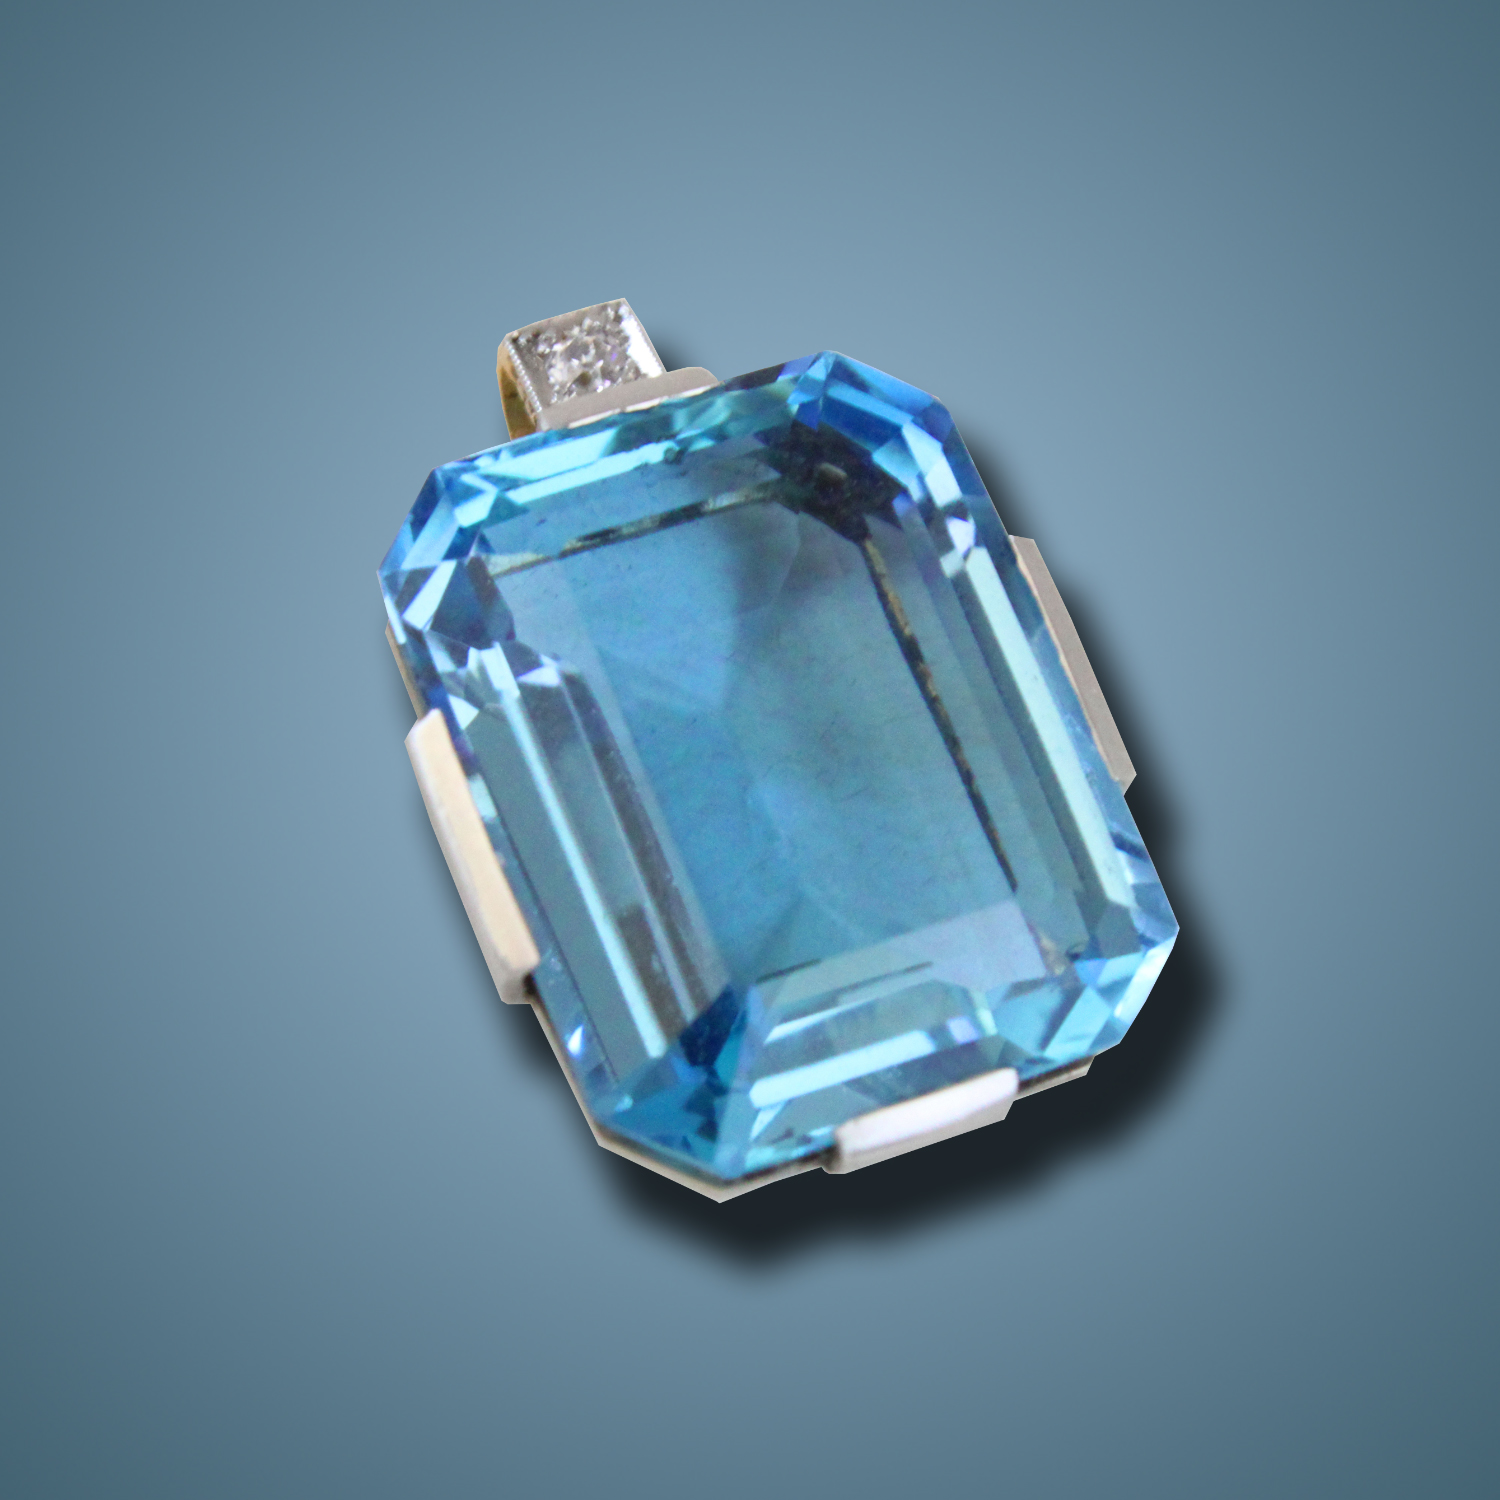 vaults crystal aquamarine pendant